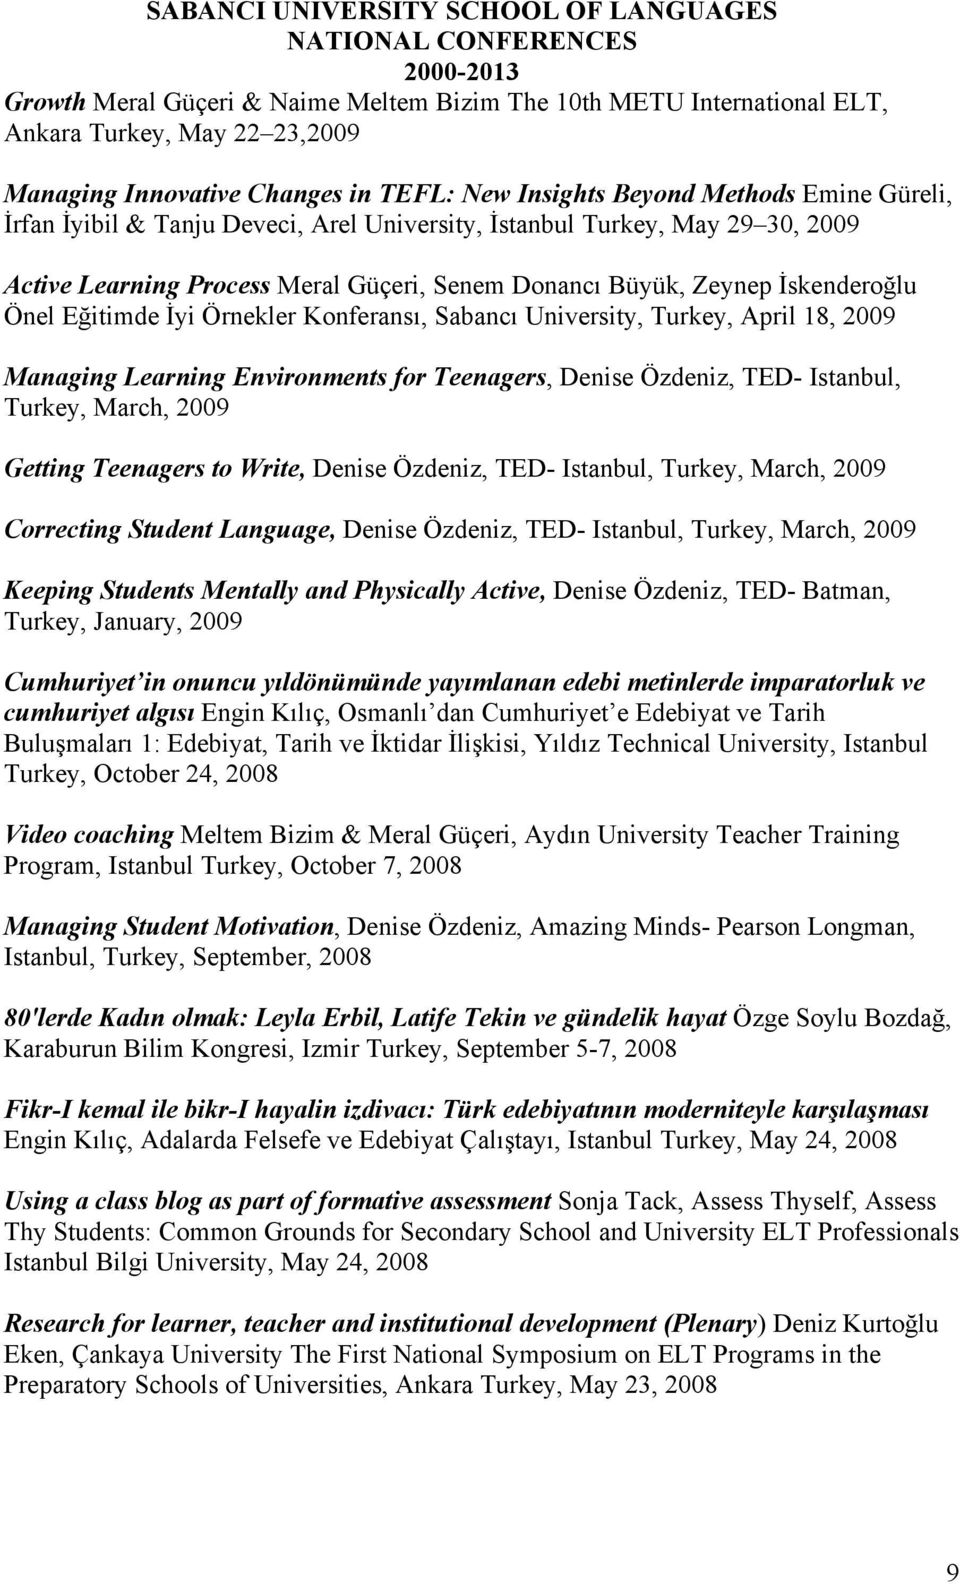 University, Turkey, April 18, 2009 Managing Learning Environments for Teenagers, Denise Özdeniz, TED- Istanbul, Turkey, March, 2009 Getting Teenagers to Write, Denise Özdeniz, TED- Istanbul, Turkey,